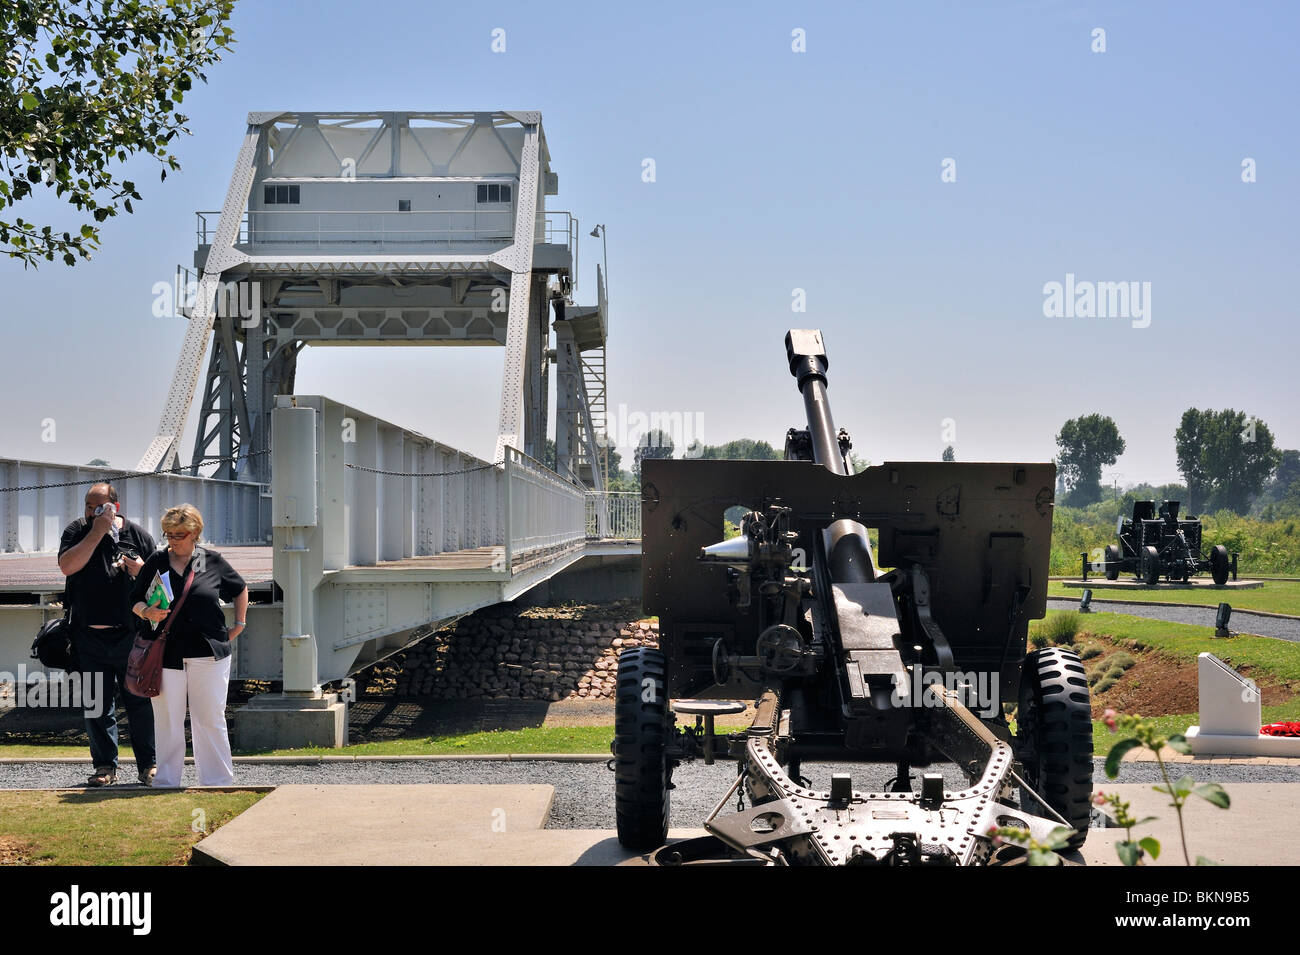 World war Two cannon and original Bénouville Bridge at the WW2 Pegasus Museum near Ouistreham, Normandy, France - Stock Image